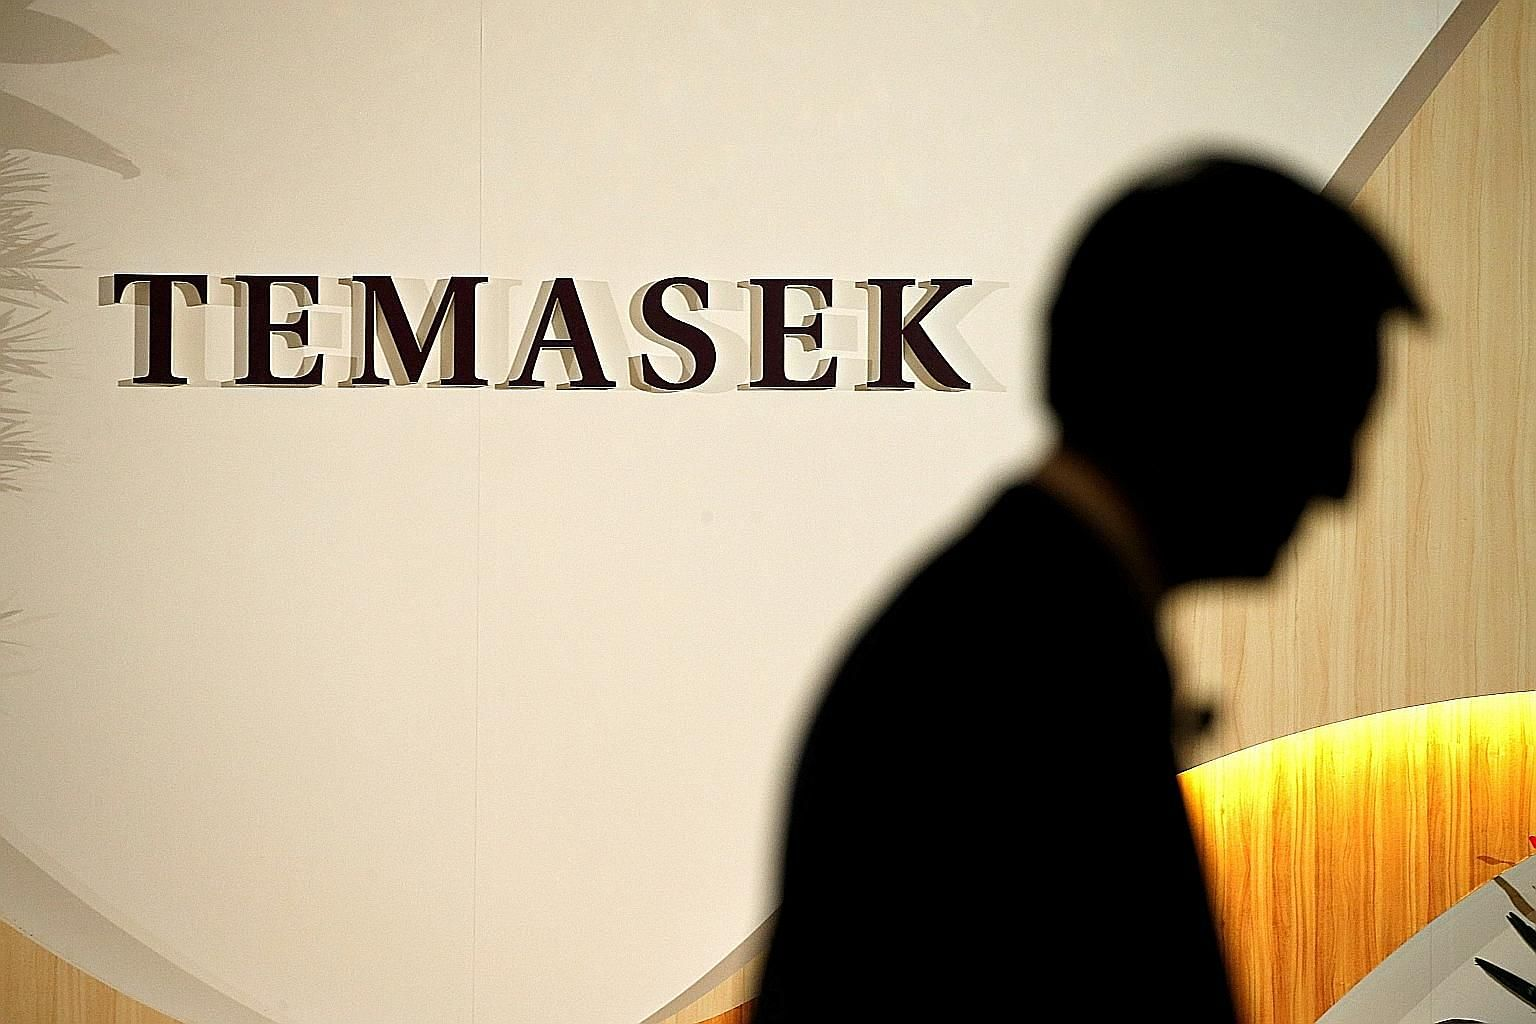 Temasek said valid applications for the bonds amounting to about $1.68 billion received under the public offer represent a subscription rate of about five times the final public offer size of $300 million.